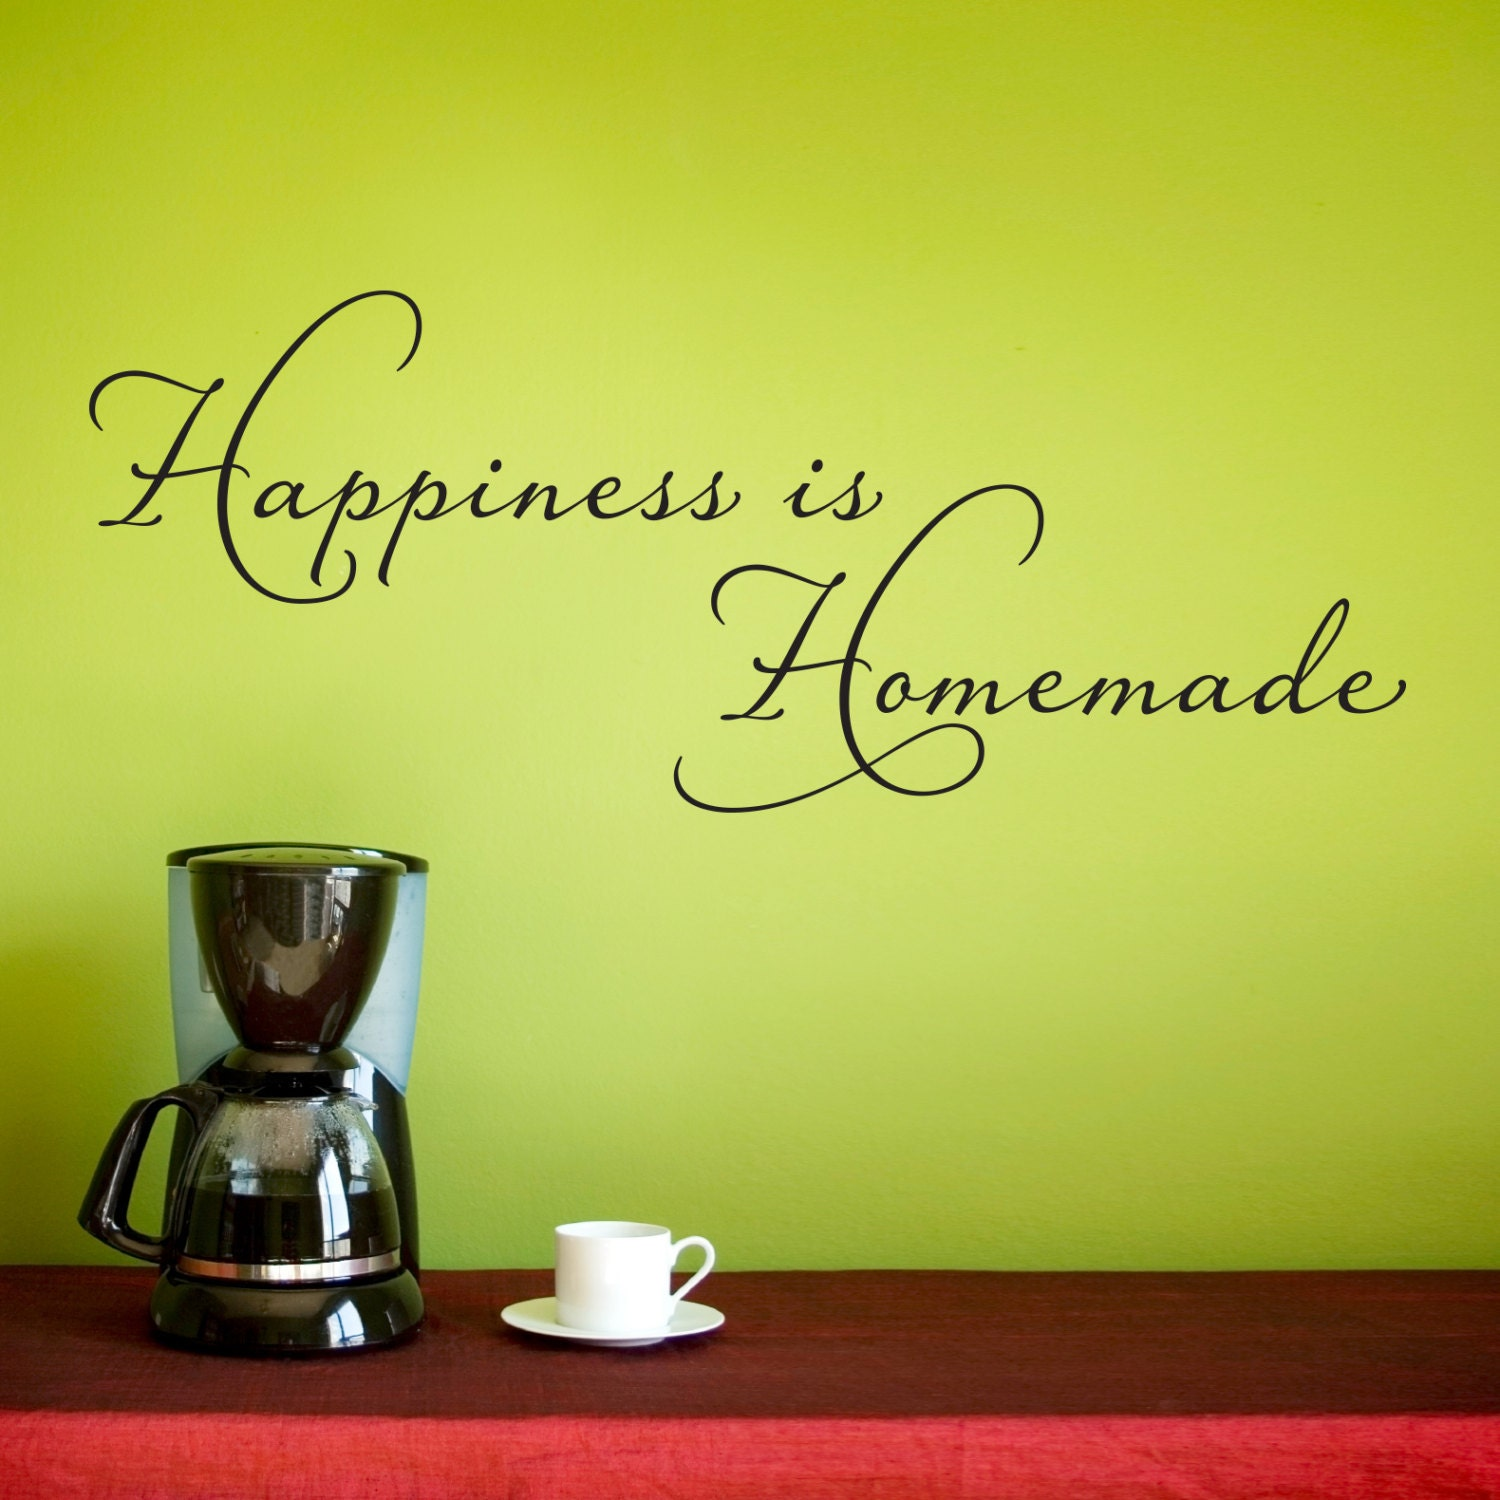 Happiness is Homemade Wall Decal Kitchen Wall Sticker : ilfullxfull4573359362tzn from www.etsy.com size 1500 x 1500 jpeg 247kB